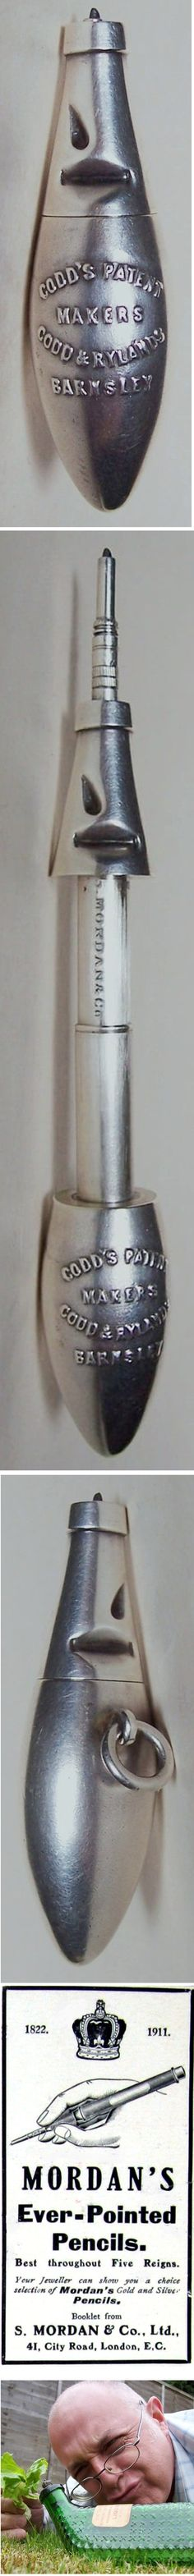 tx for sharing John Ault, For REAL Diggers & Collectors, Visual Storyteller : For Hybrid day, a Codd & Rylands mechanical advertising pencil made by Sampson Morden. Works a treat, a beautiful piece of engineering.